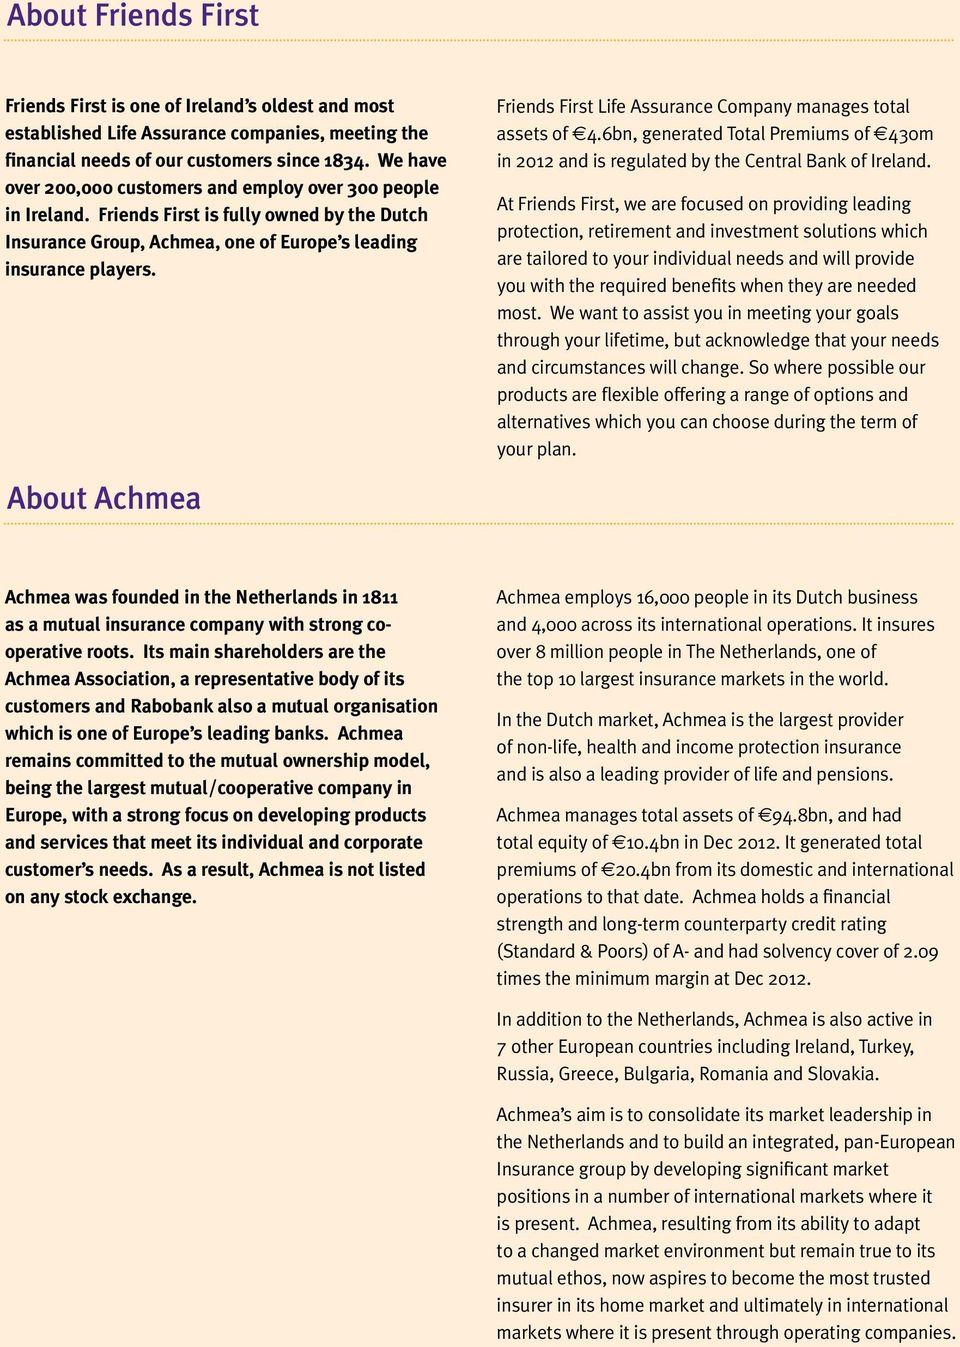 About Achmea Friends First Life Assurance Company manages total assets of 4.6bn, generated Total Premiums of 430m in 2012 and is regulated by the Central Bank of Ireland.